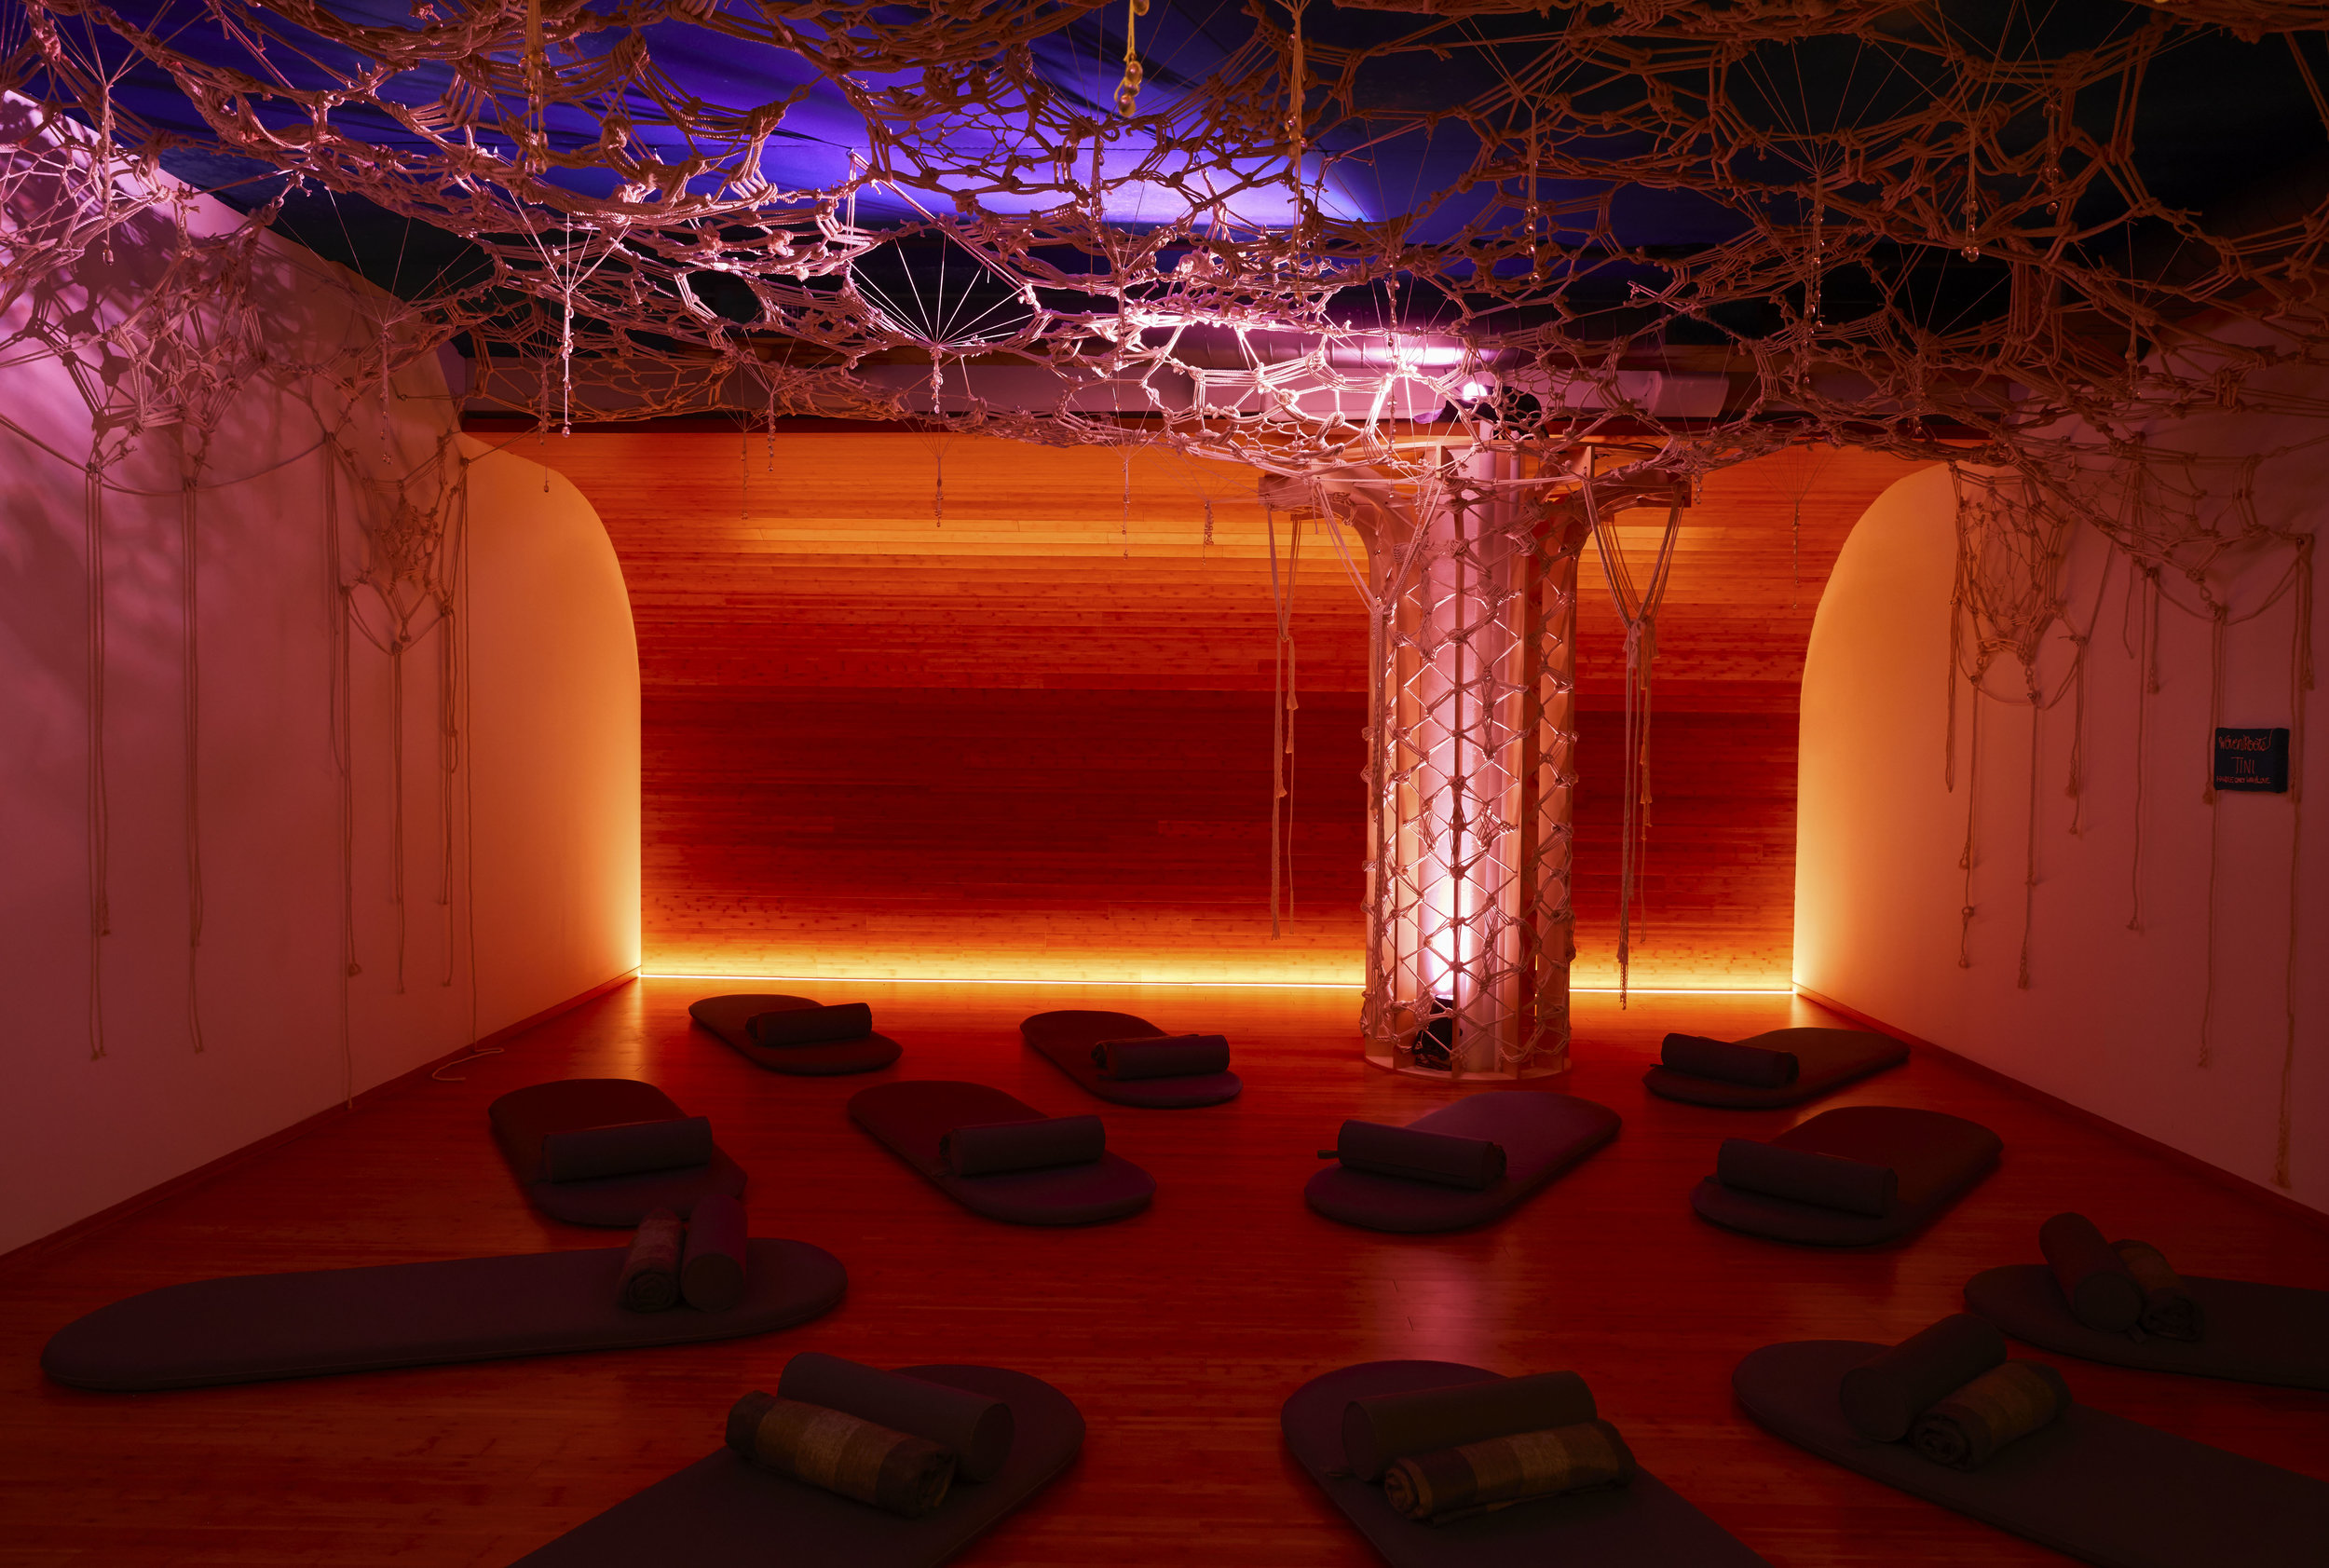 inscape-meditation-better-sleep-relax-studio